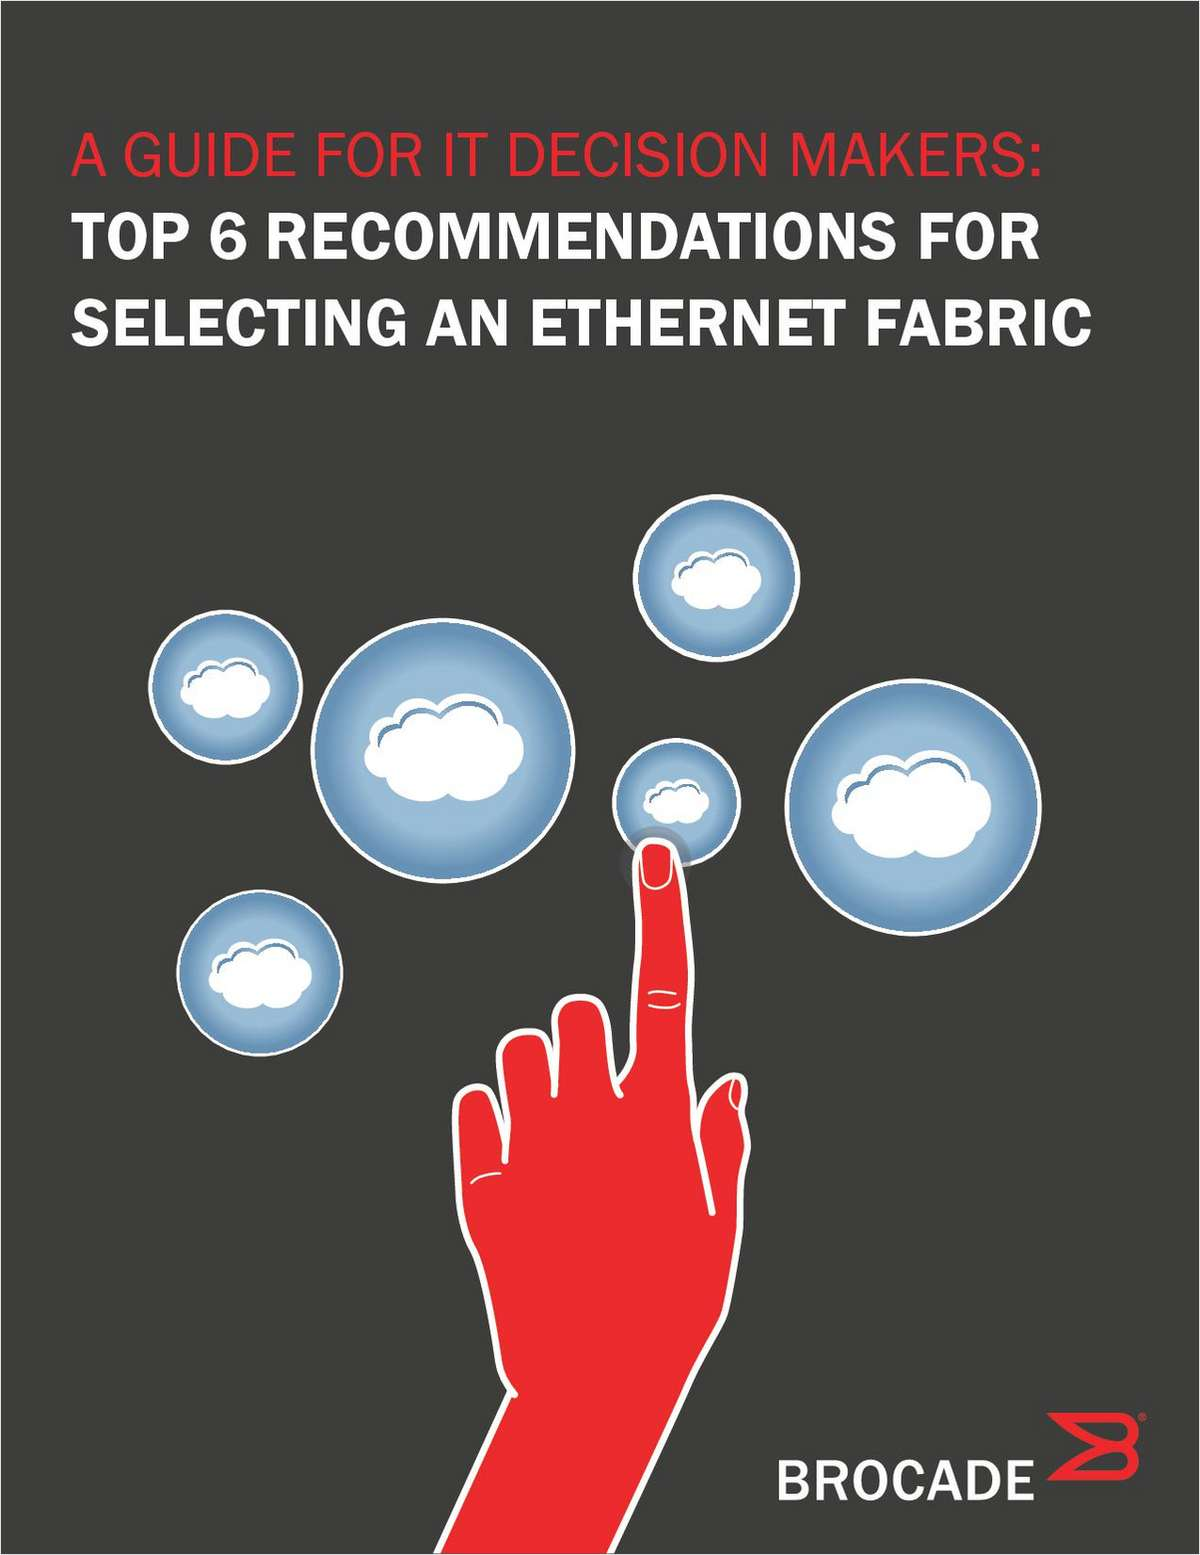 A Guide for IT Decision Makers: Top 6 Recommendations for Selecting an Ethernet Fabric